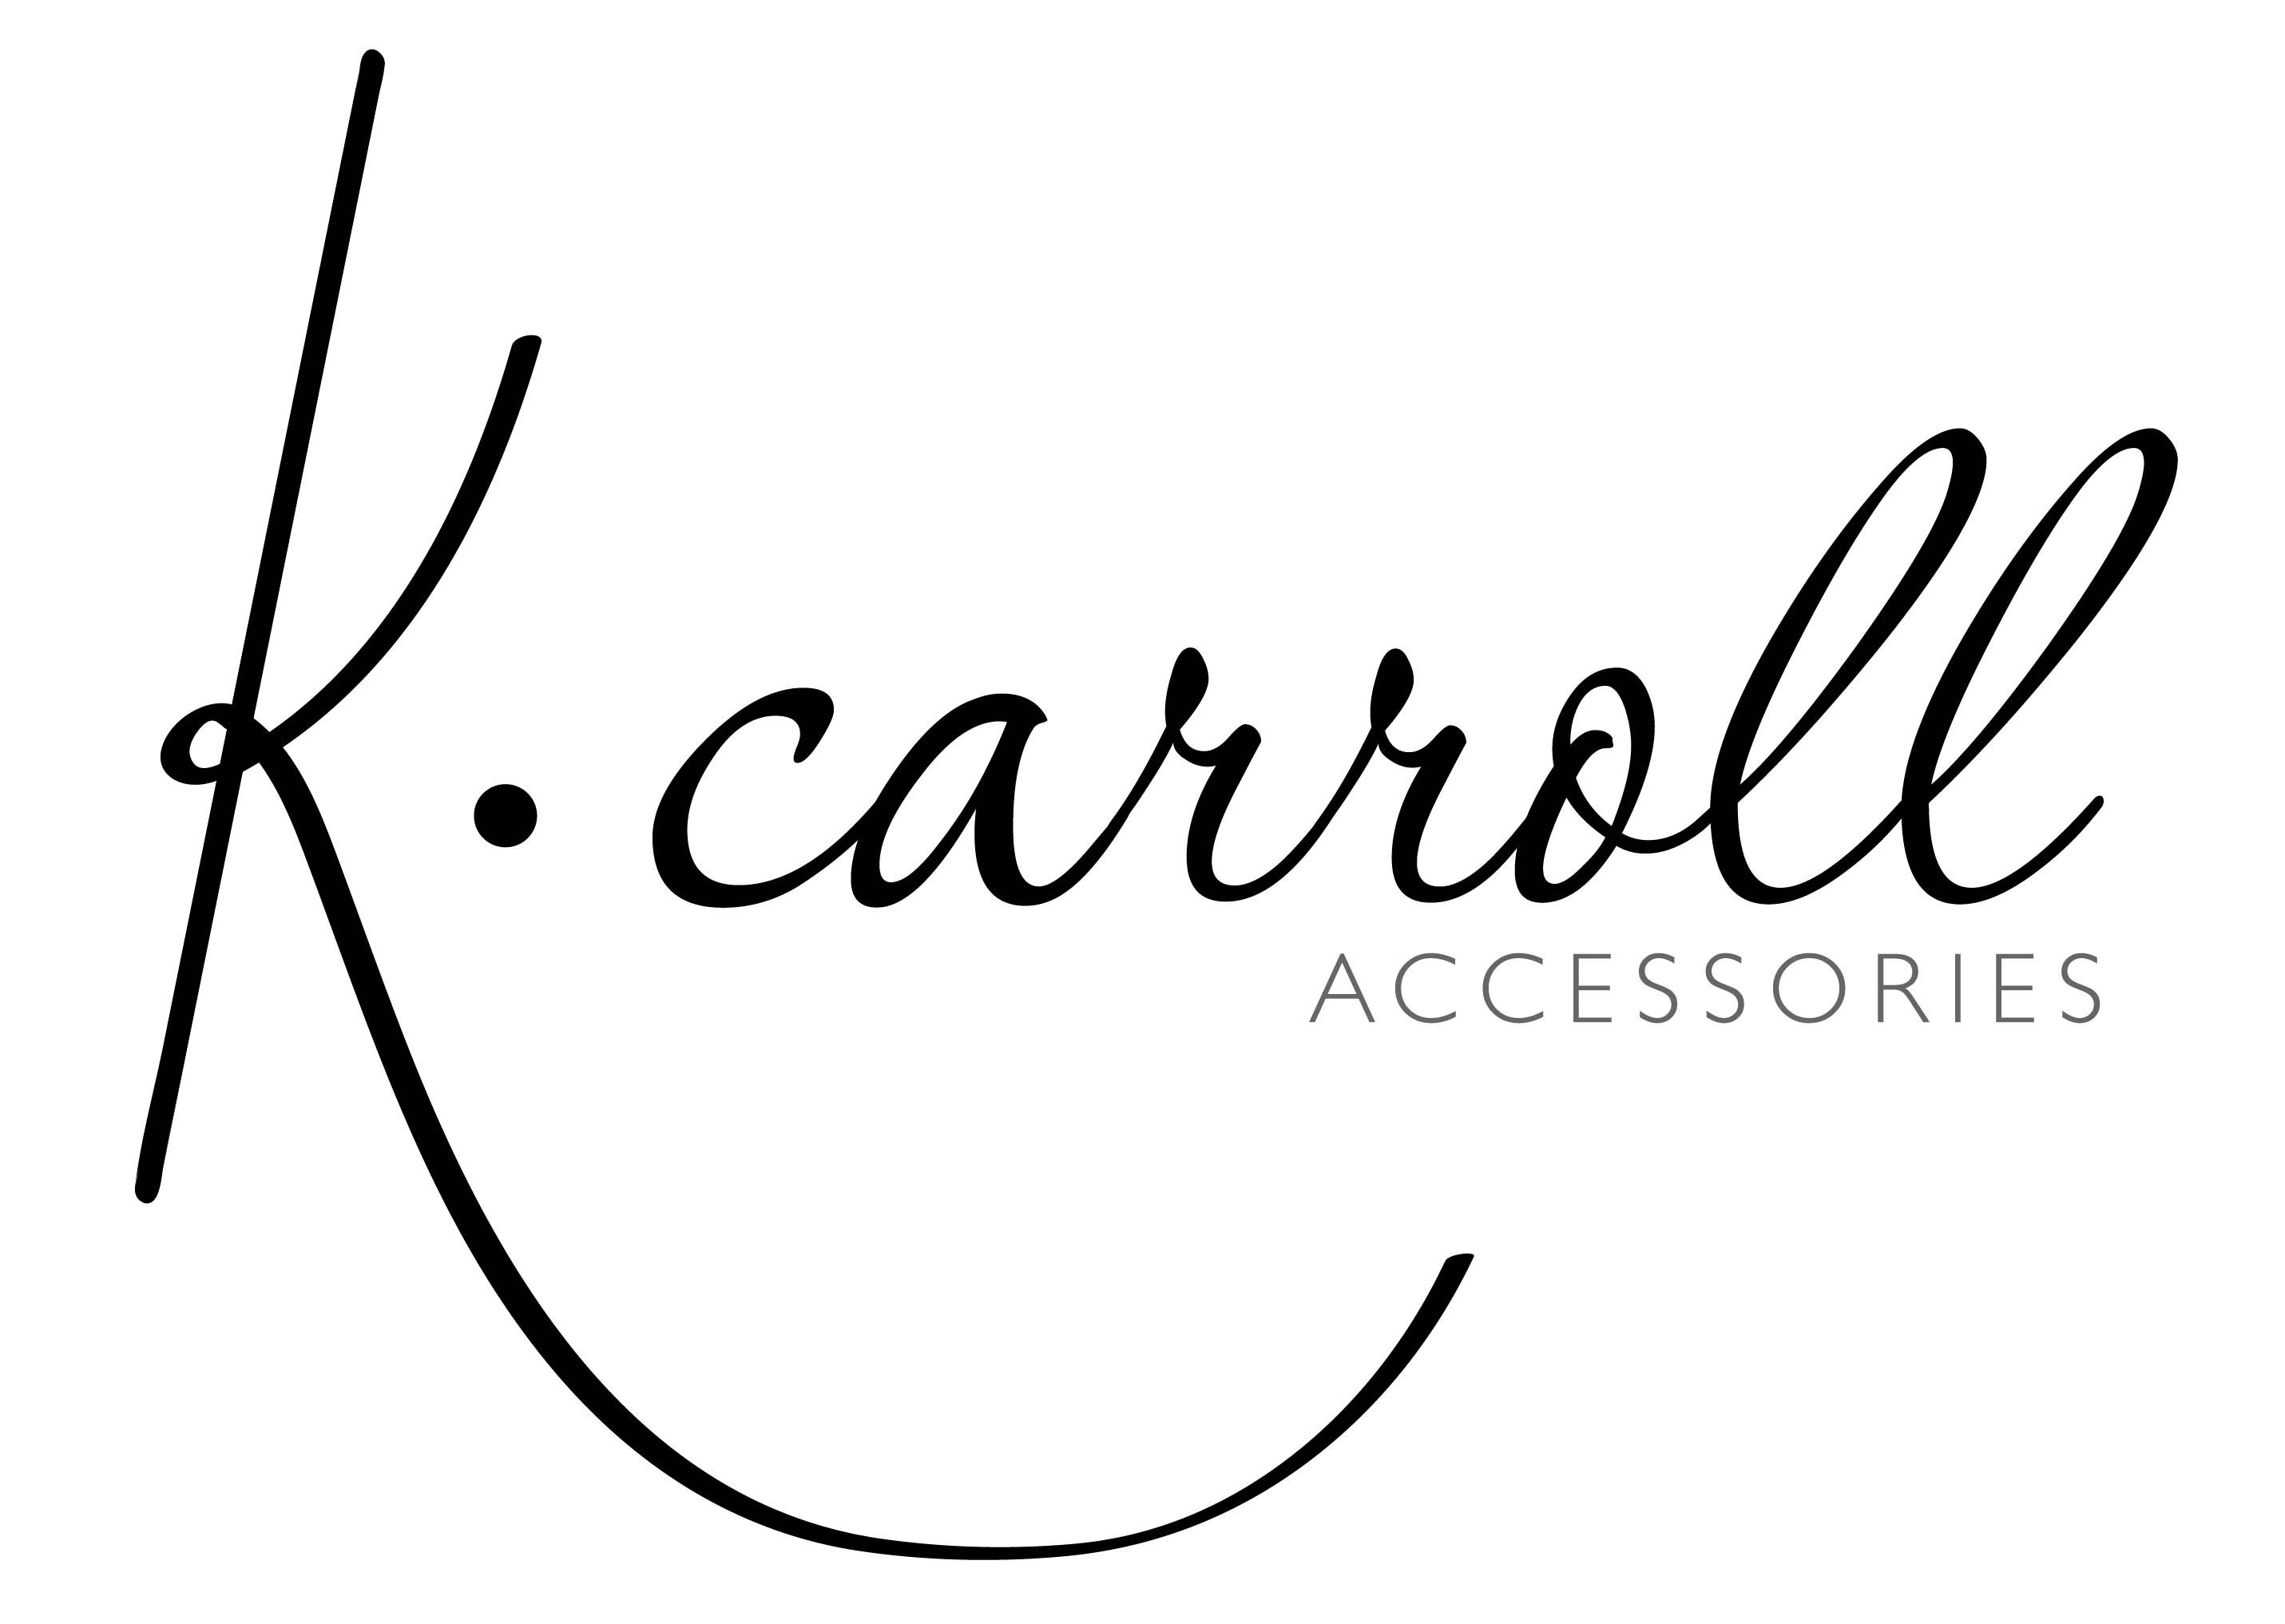 K. Carroll Accessories